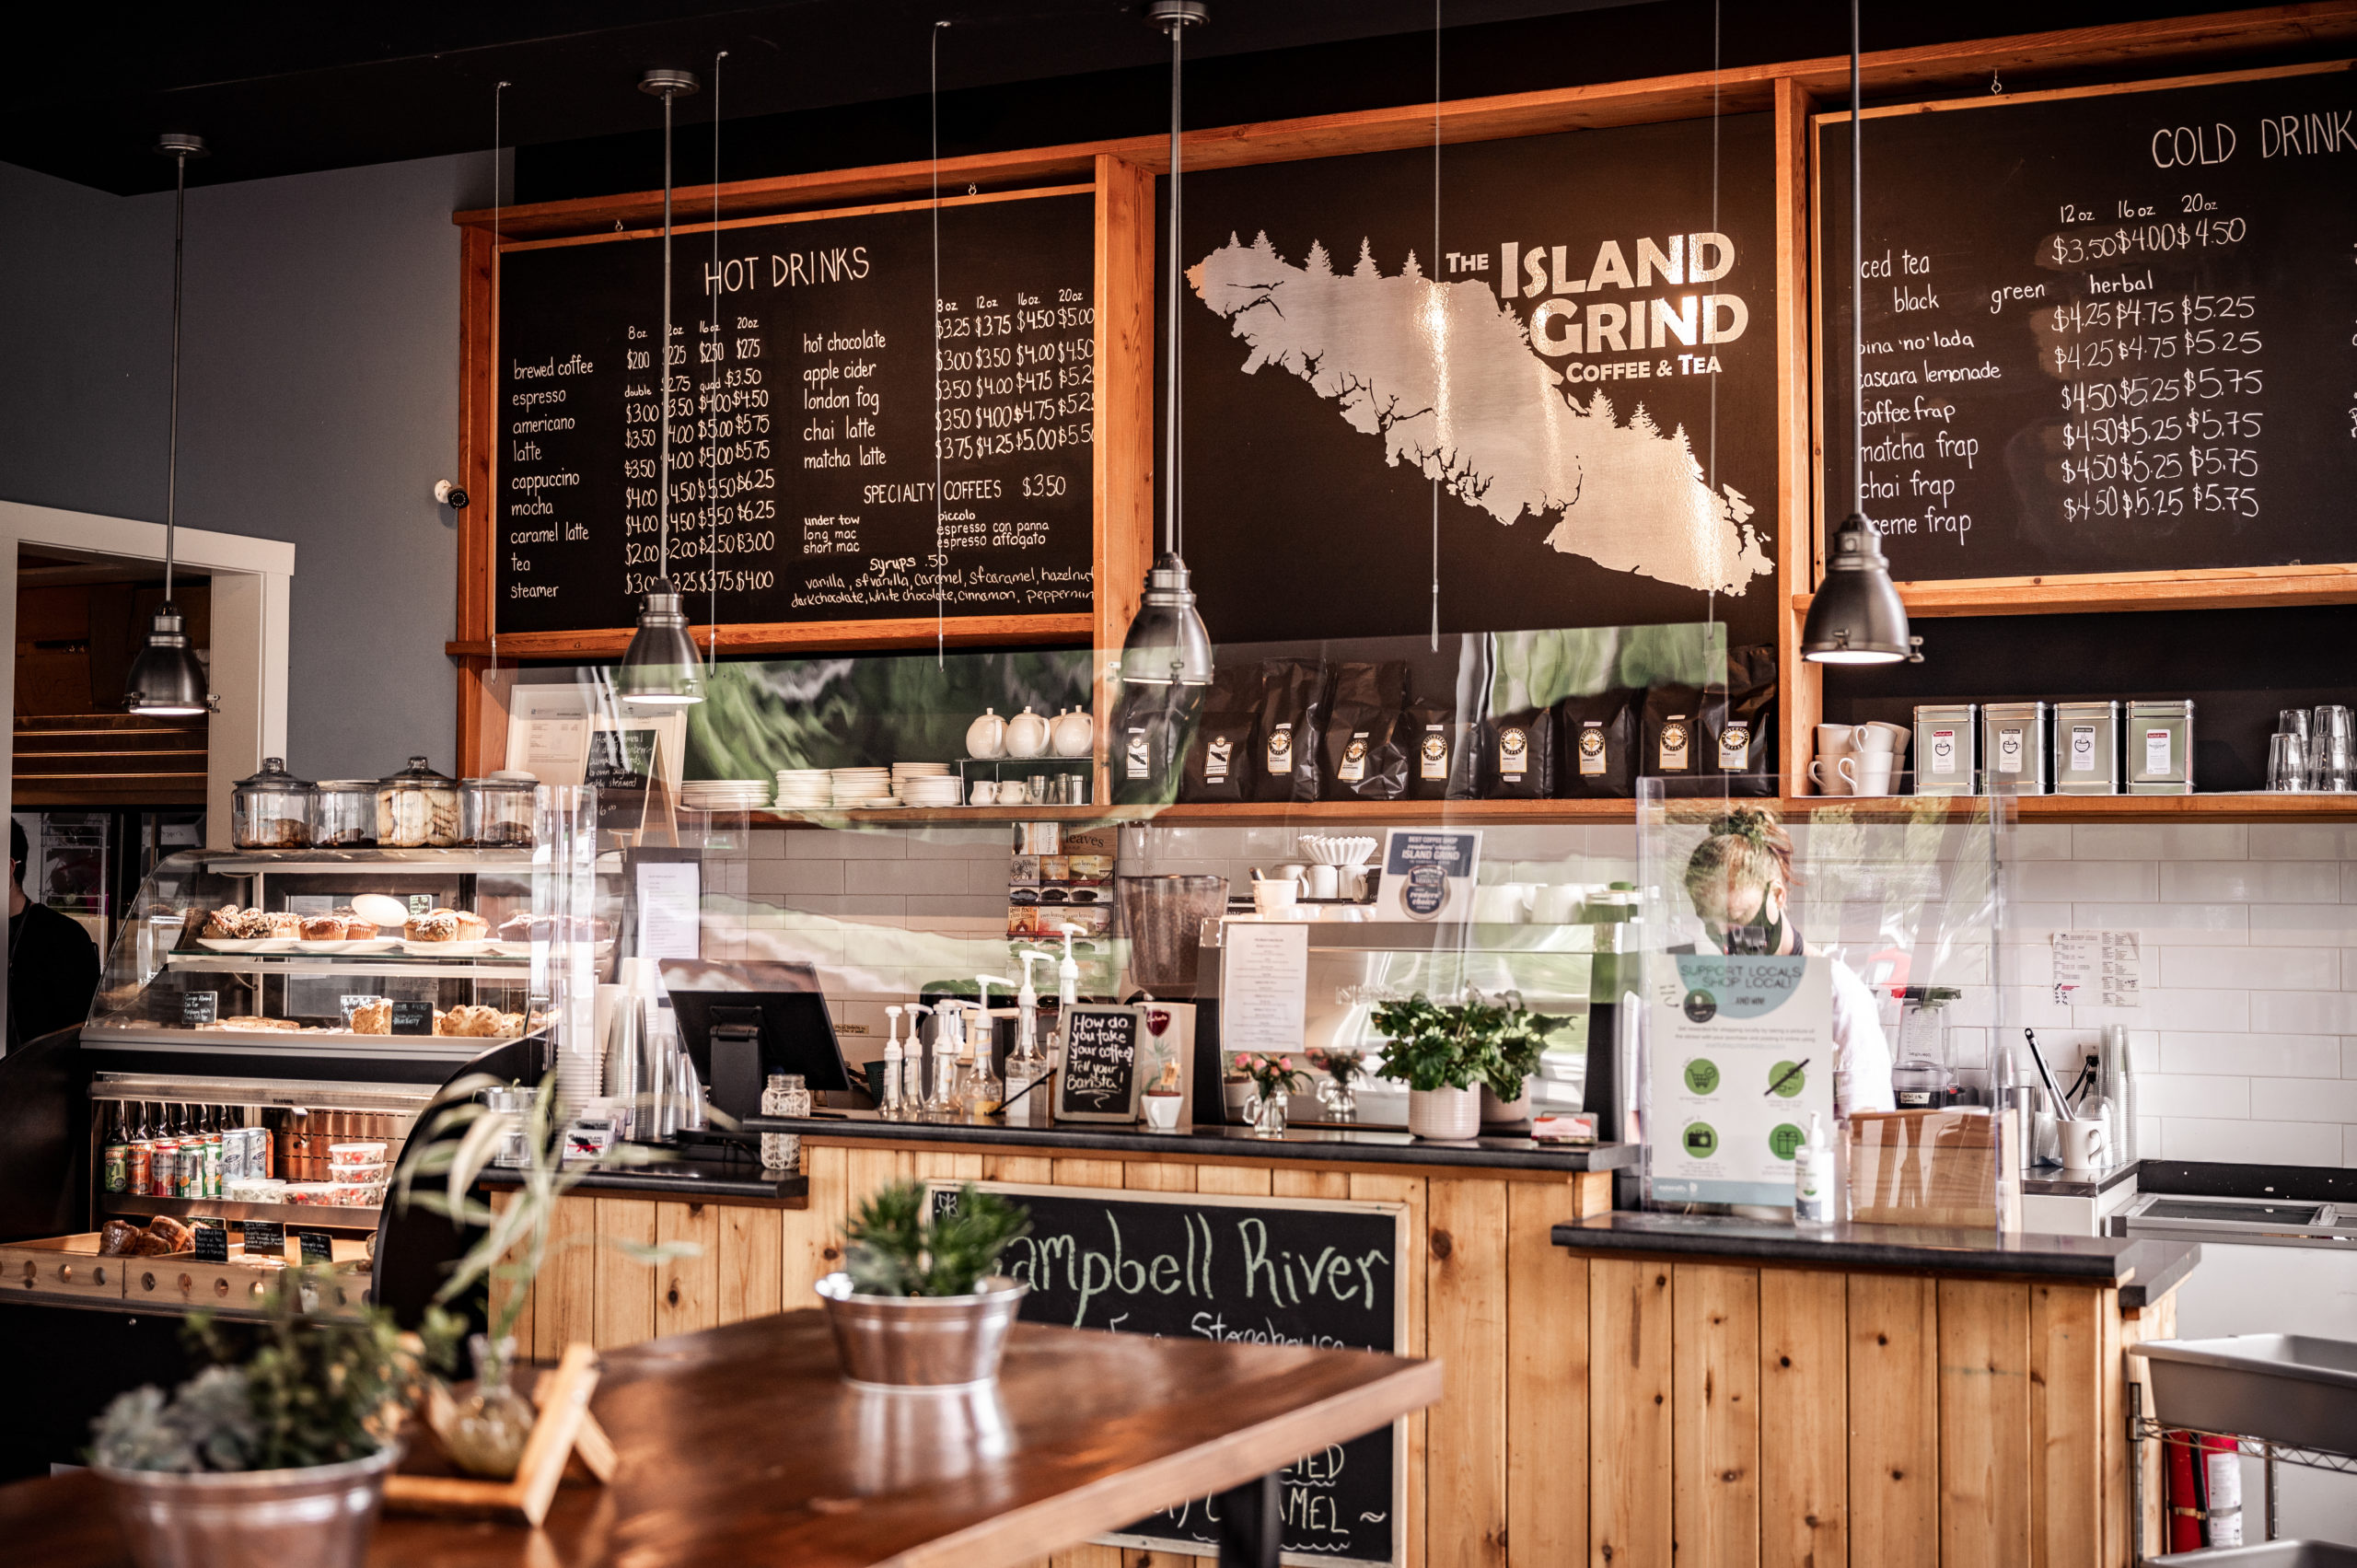 Photo by Bluhen Photography taken at the Island Grind Coffee & Tea